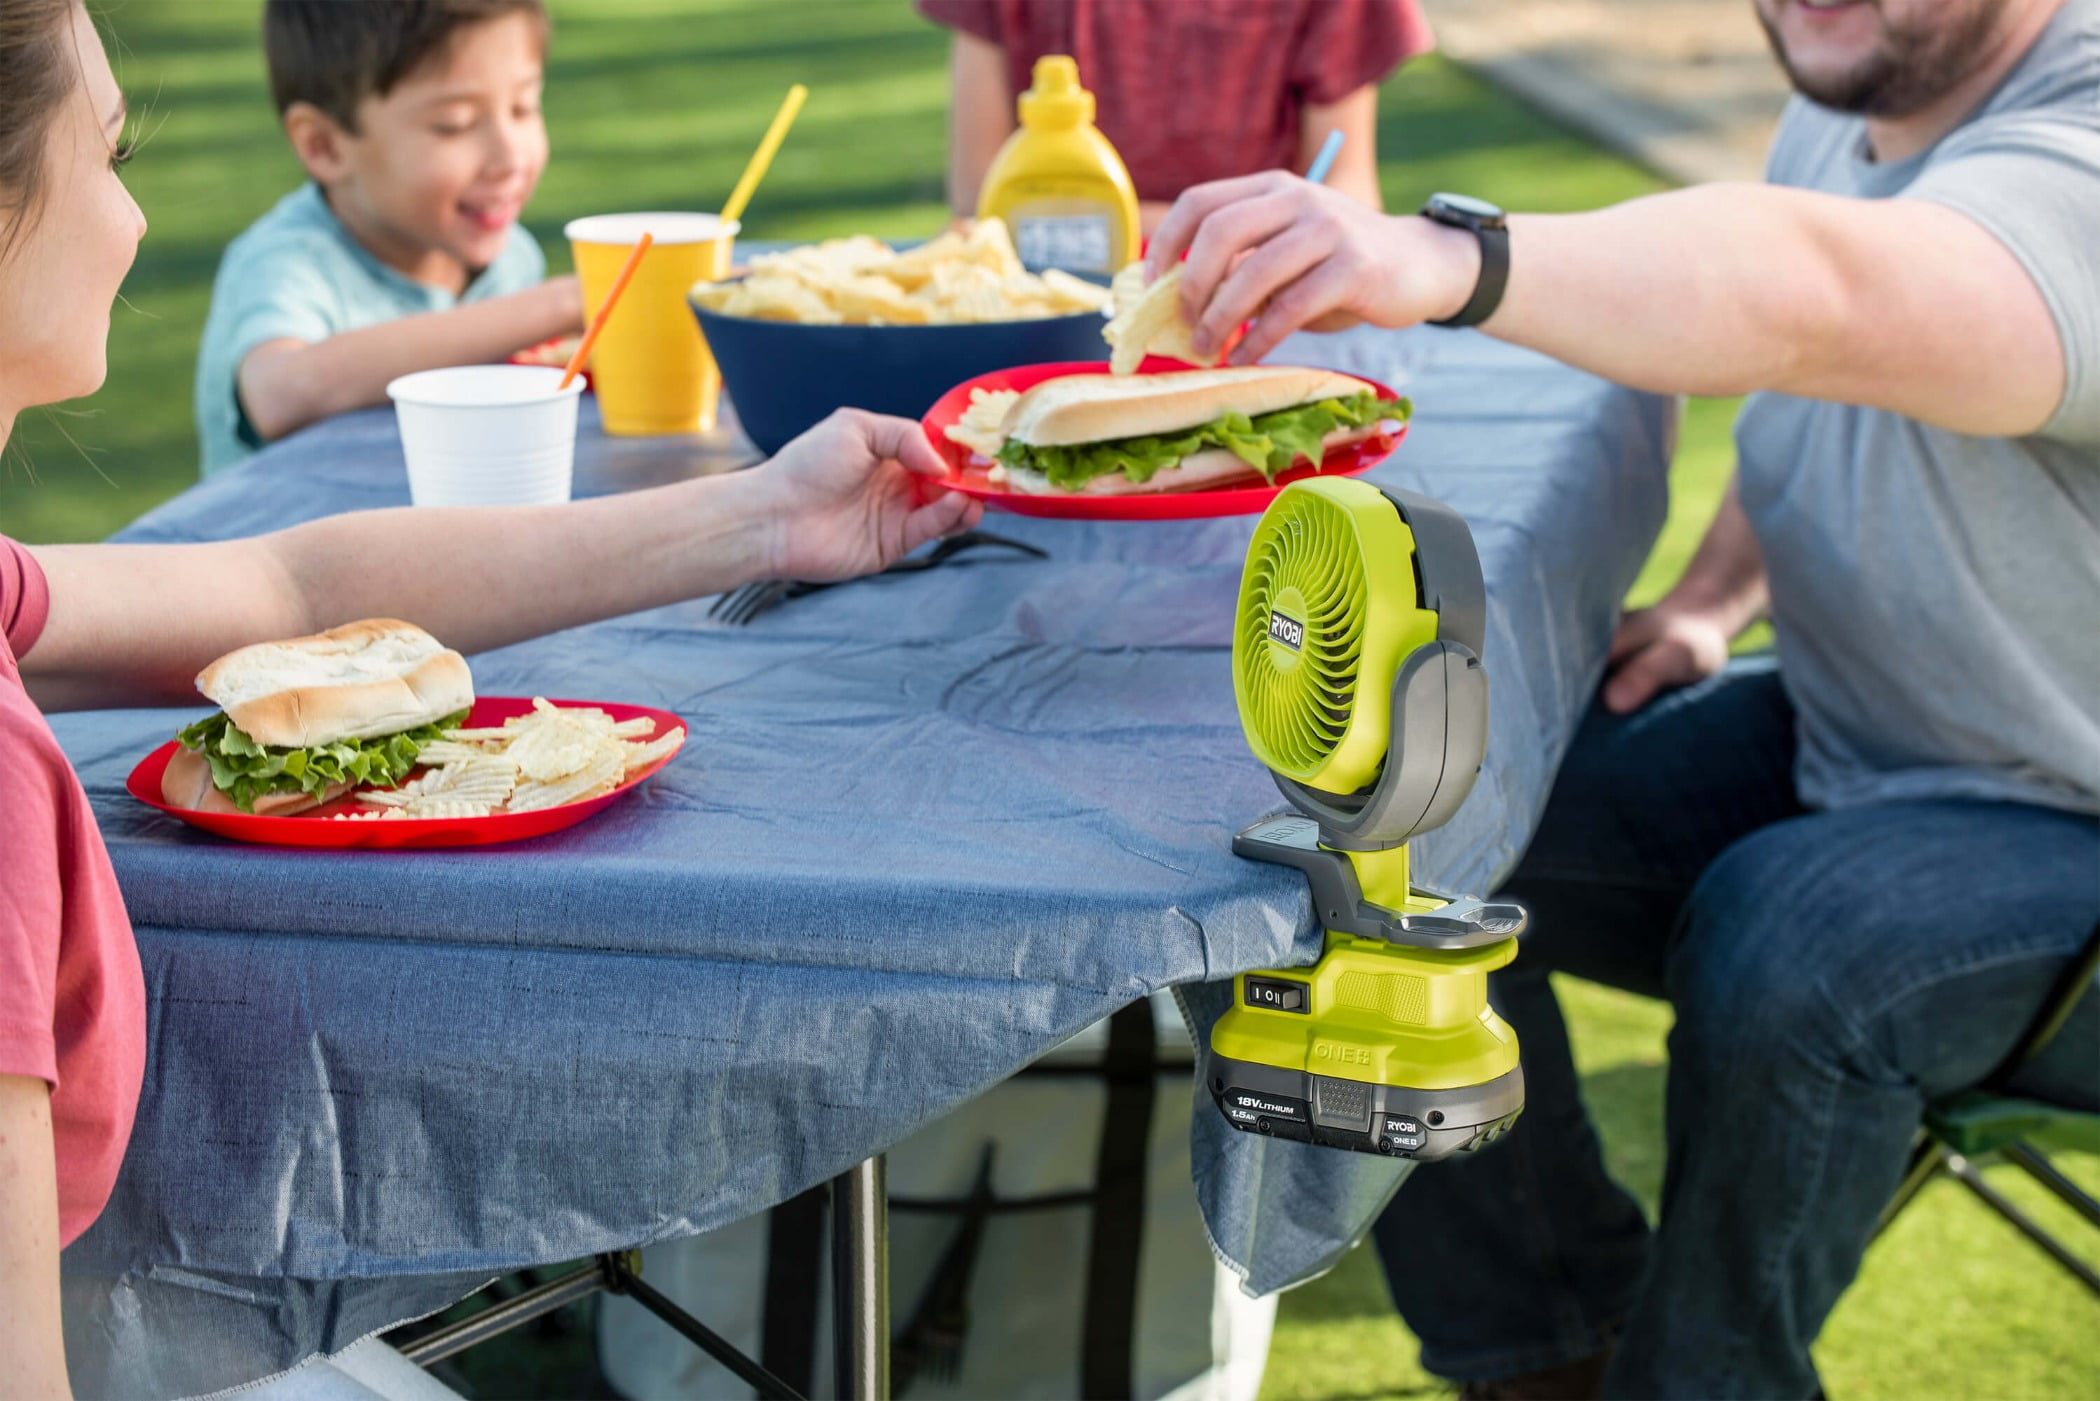 Food craving, Outdoor recreation, Jeans, Green, Tableware, Sharing, Yellow, Cuisine, Plate